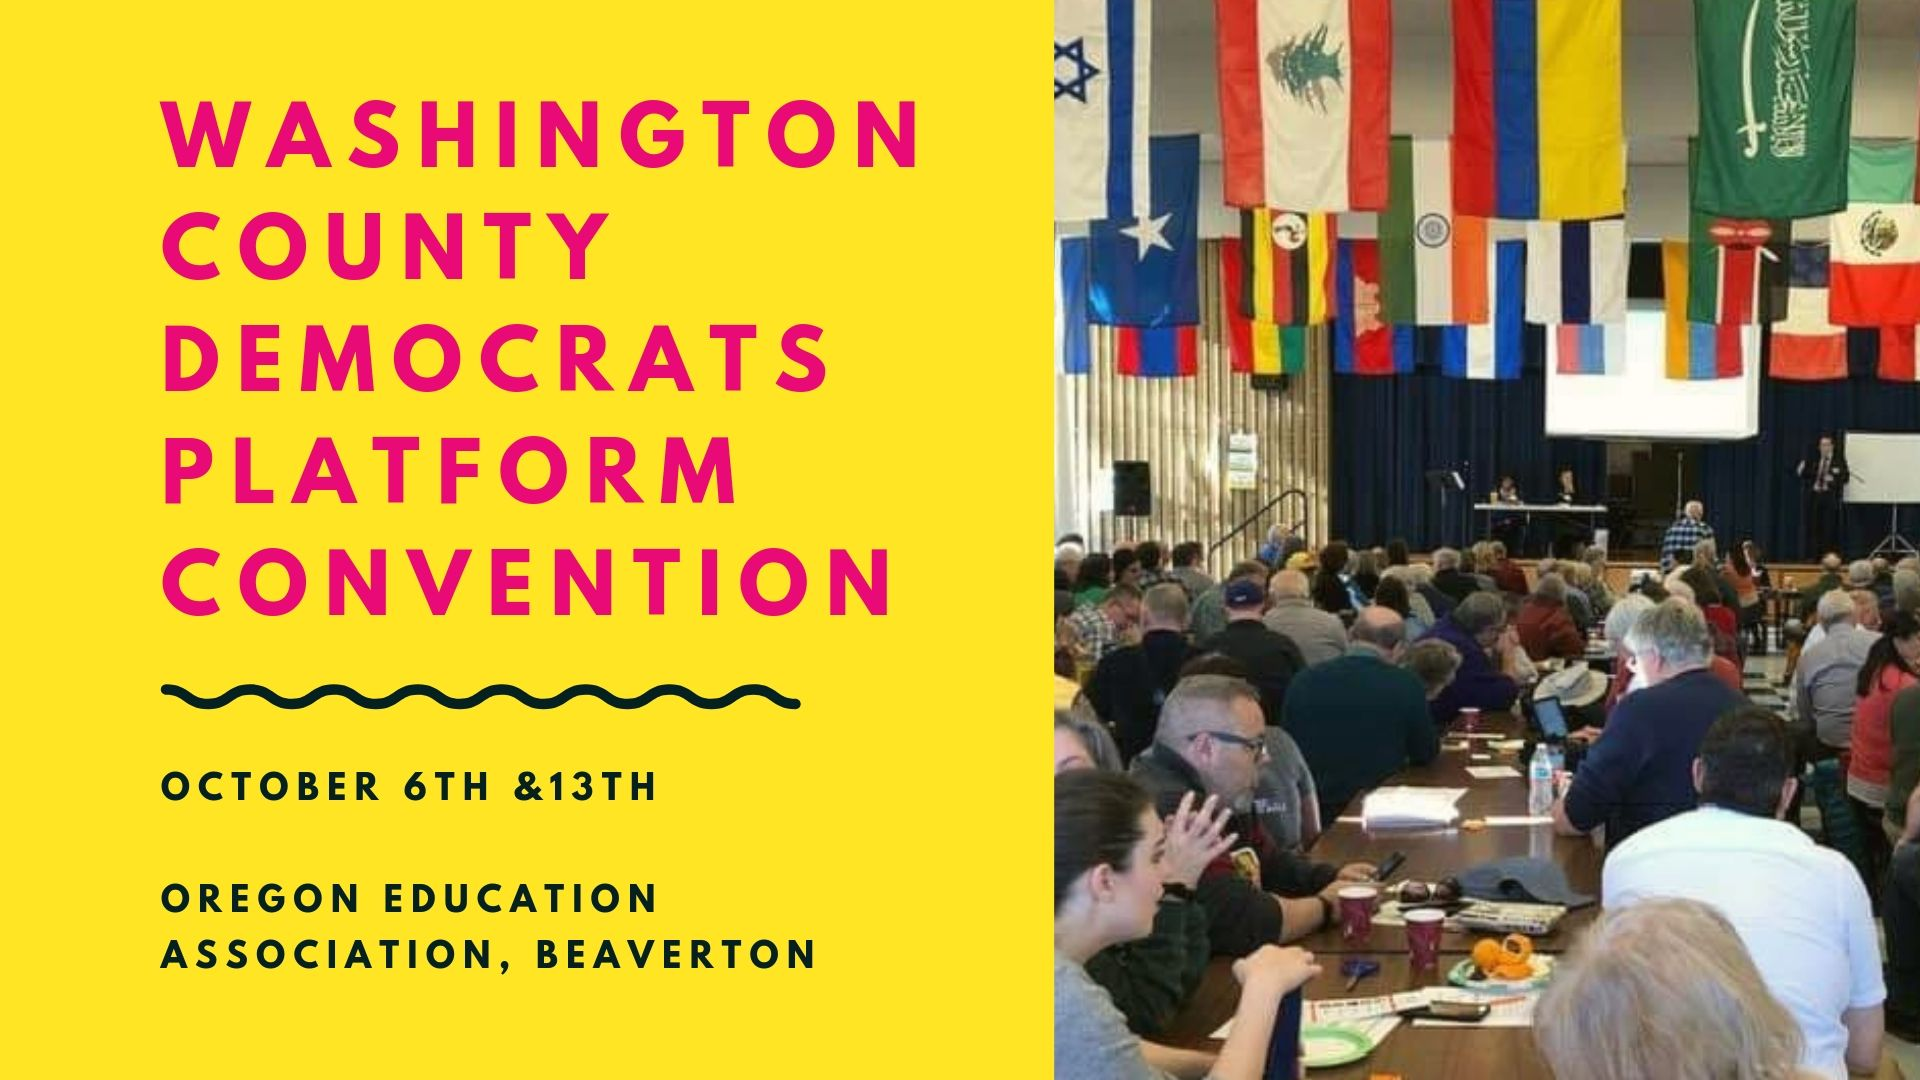 Washington County Democrats 2019 Biennial Platform Convention